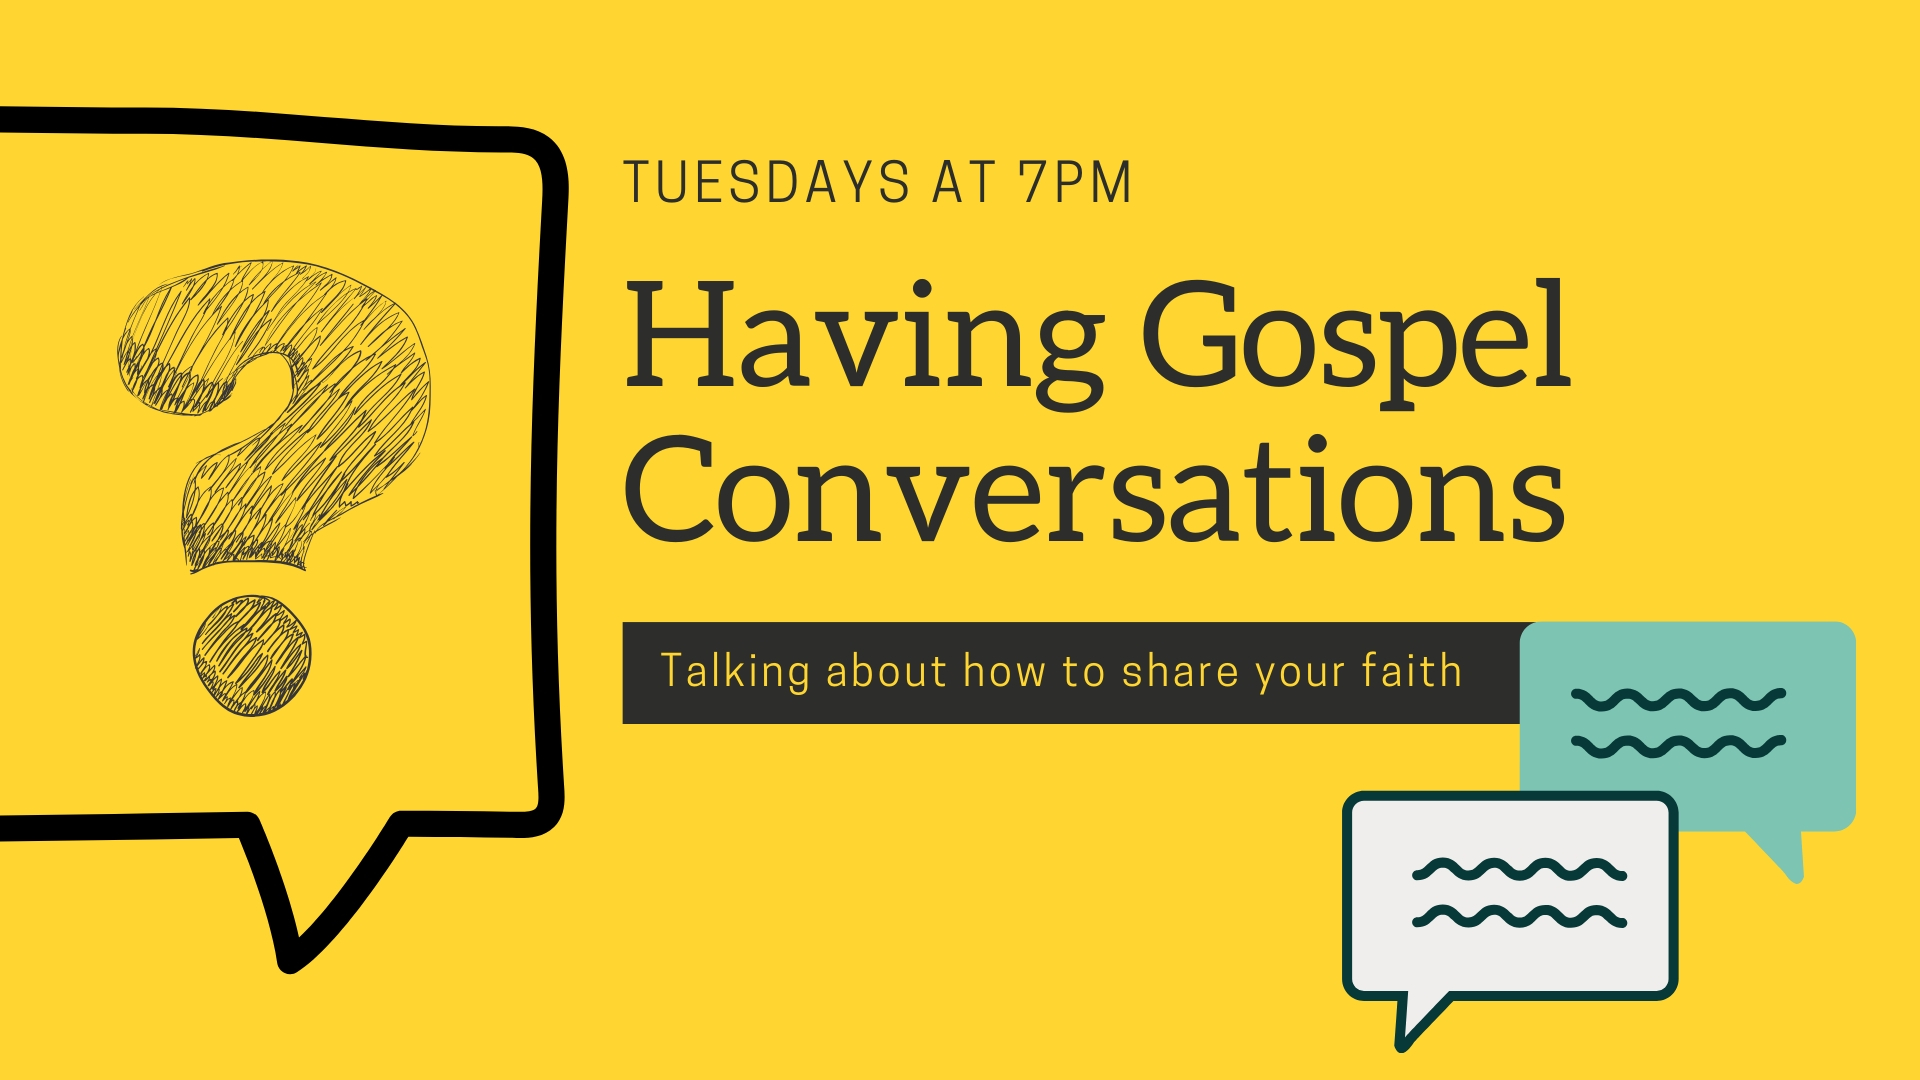 Having Gospel Conversations - Week 5 Image